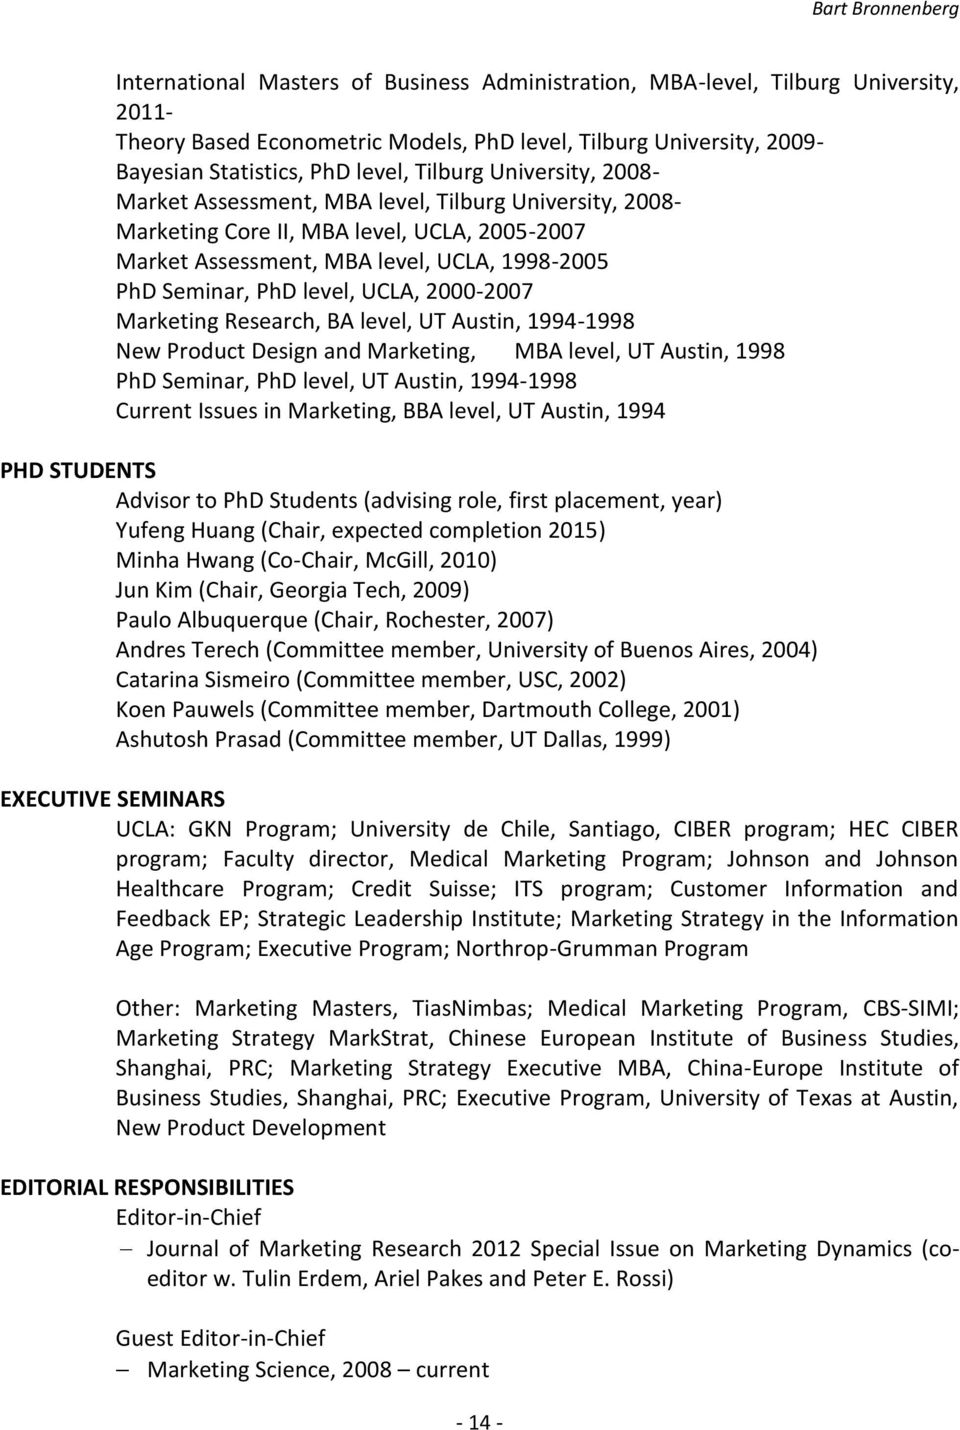 2000-2007 Marketing Research, BA level, UT Austin, 1994-1998 New Product Design and Marketing, MBA level, UT Austin, 1998 PhD Seminar, PhD level, UT Austin, 1994-1998 Current Issues in Marketing, BBA